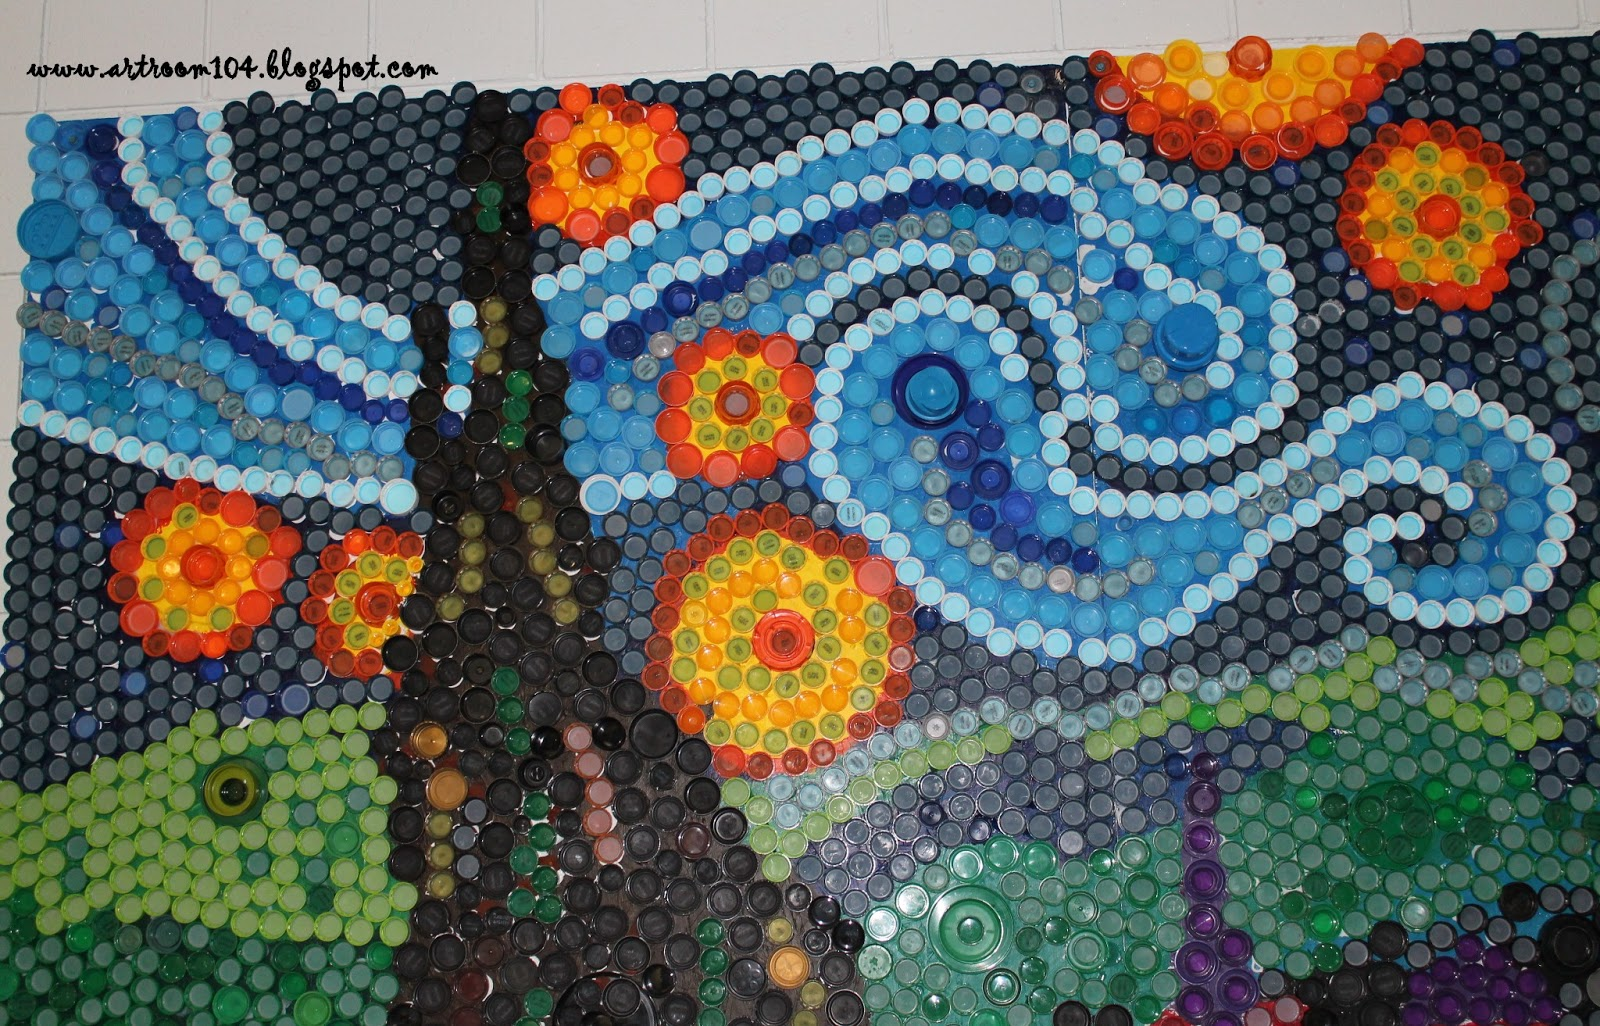 Art room 104 finished bottle cap mural starry night for Bottle top art projects